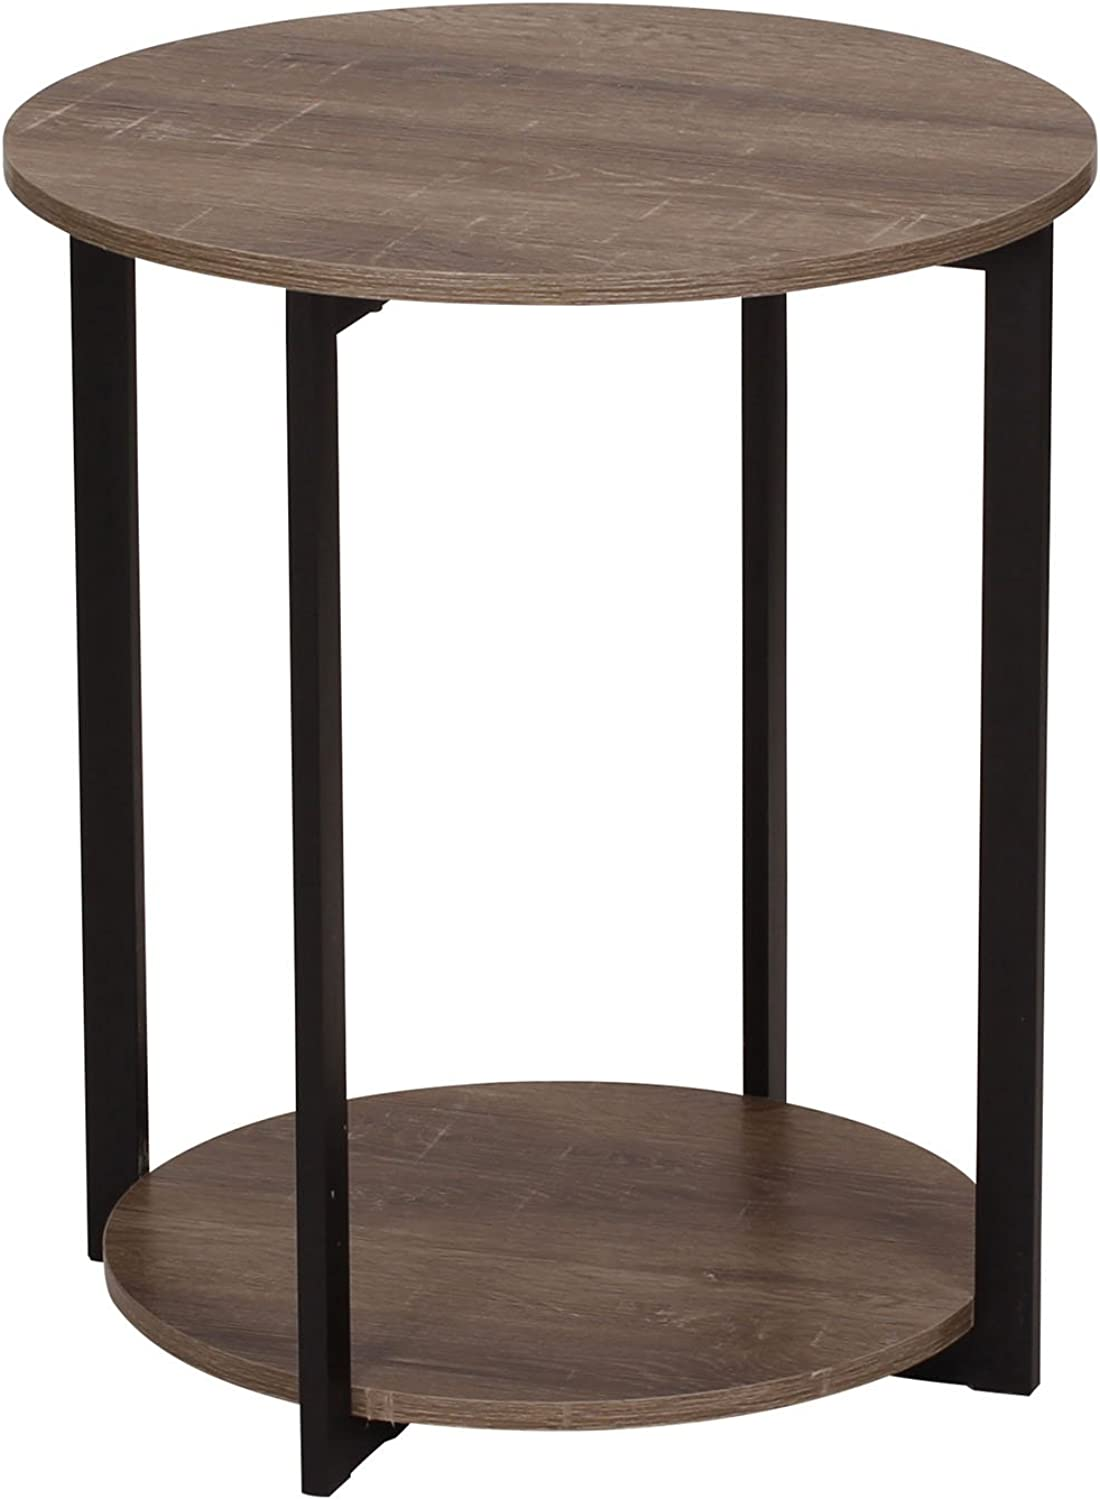 Household Essentials 8080-1 Round Wooden Side Table   End Table with Storage Shelf   Ashwood